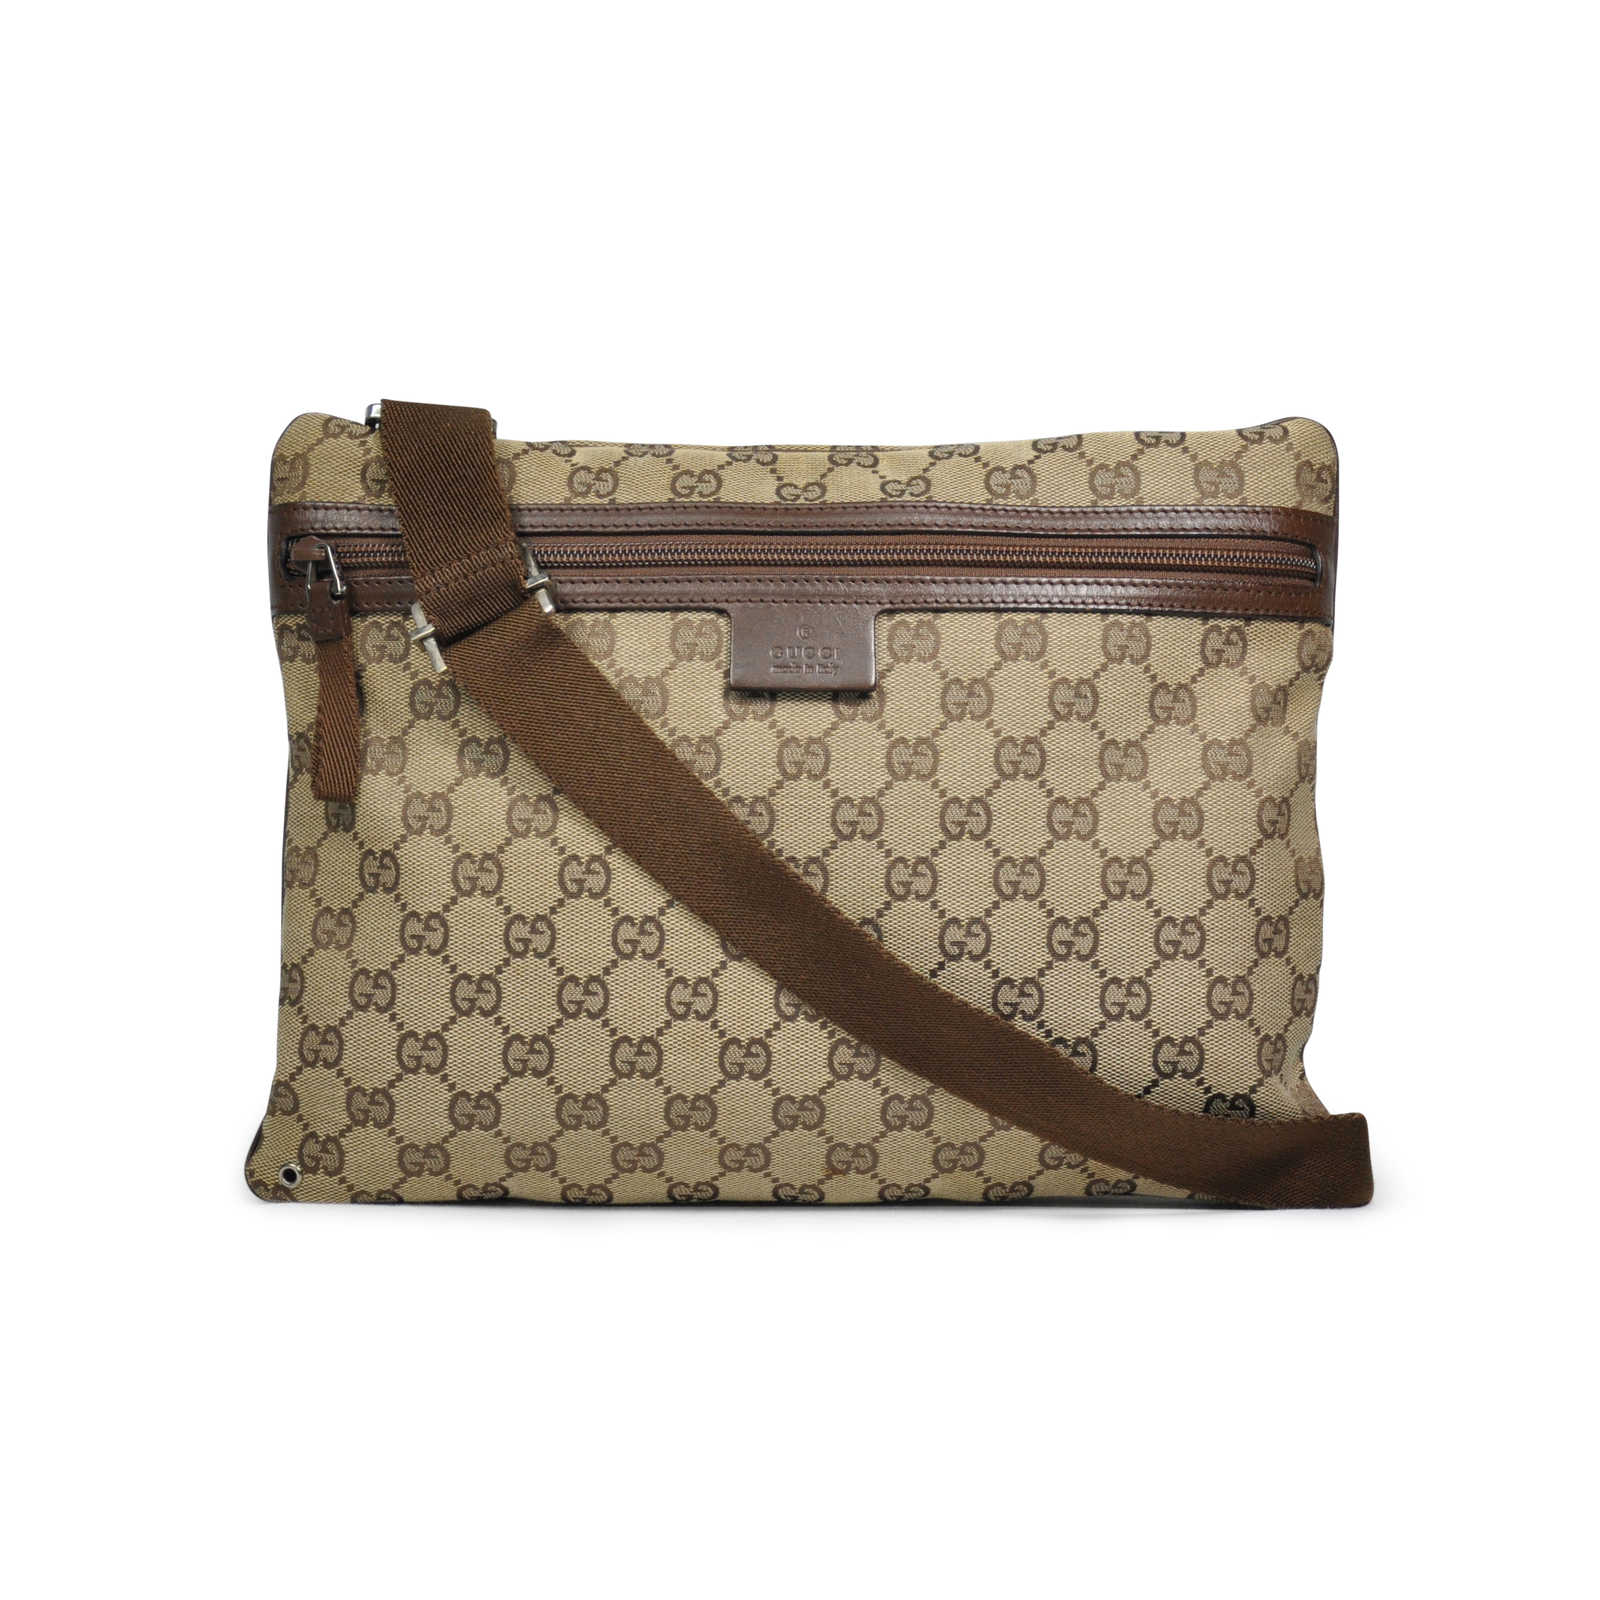 e82b980822c Authentic Second Hand Gucci Monogram Crossbody Bag Pss 283 00004